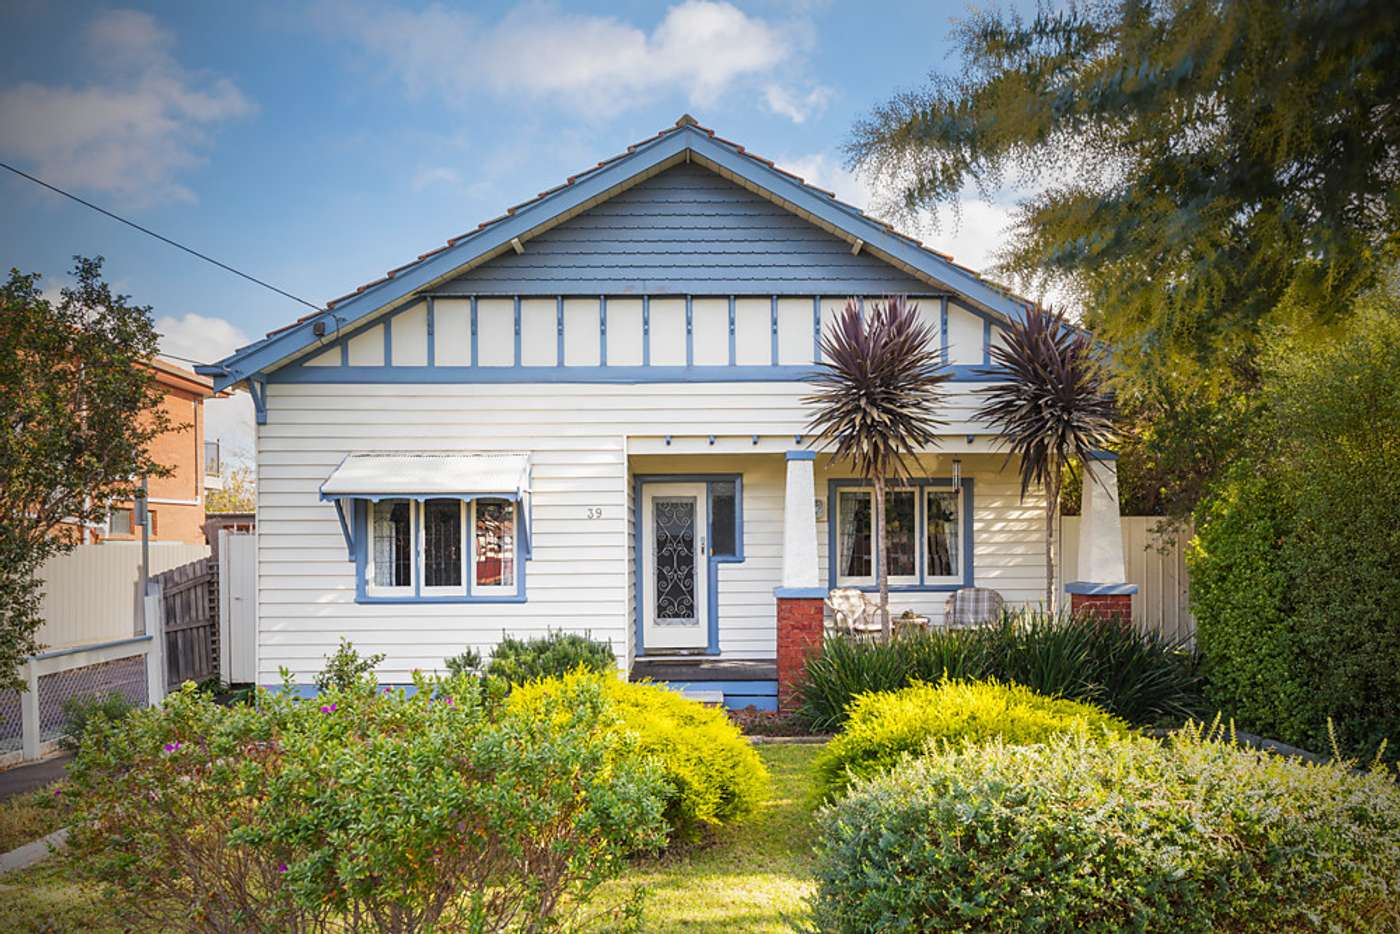 Main view of Homely house listing, 39 Huntington Grove, Coburg VIC 3058